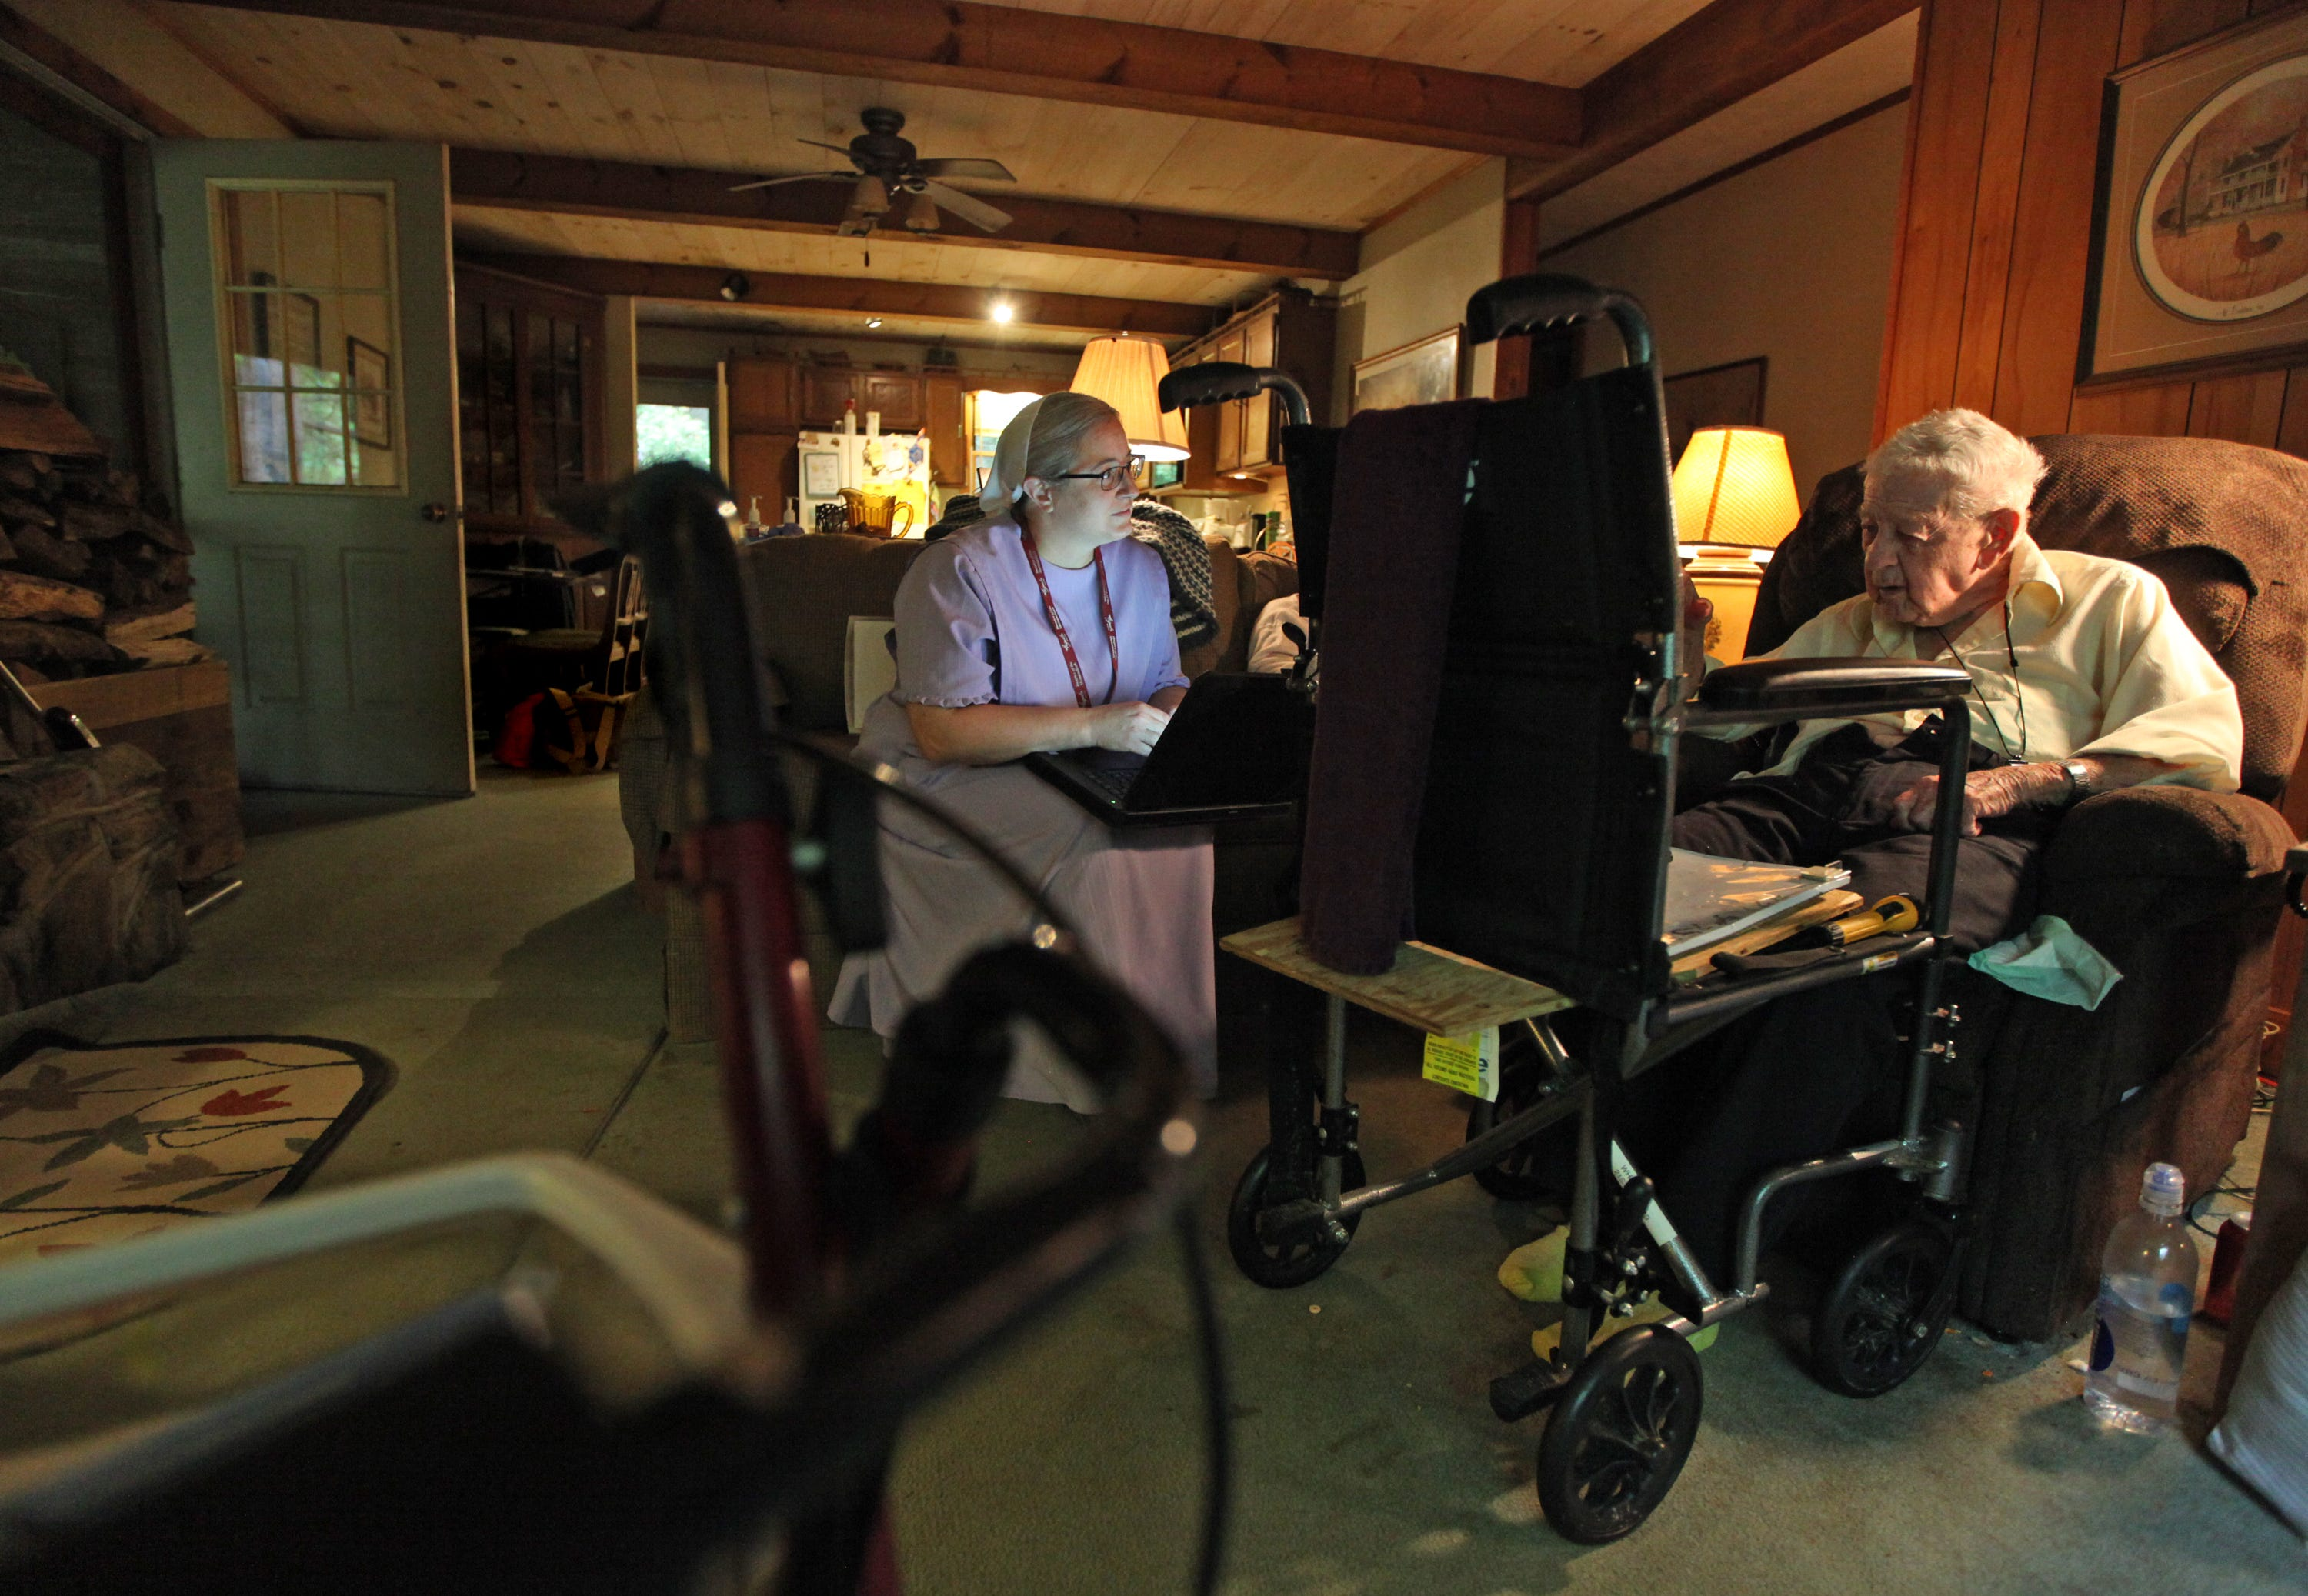 Laura Summy, a hospice nurse with Augusta Health, checks in on Raymond Wilkerson at his home in Swoope on Aug. 27, 2019. Wilkerson and his wife Jean are both receiving hospice care. Some of Summy's duties include monitoring heart rate and blood pressure, refilling prescriptions and answering any questions patients may have.